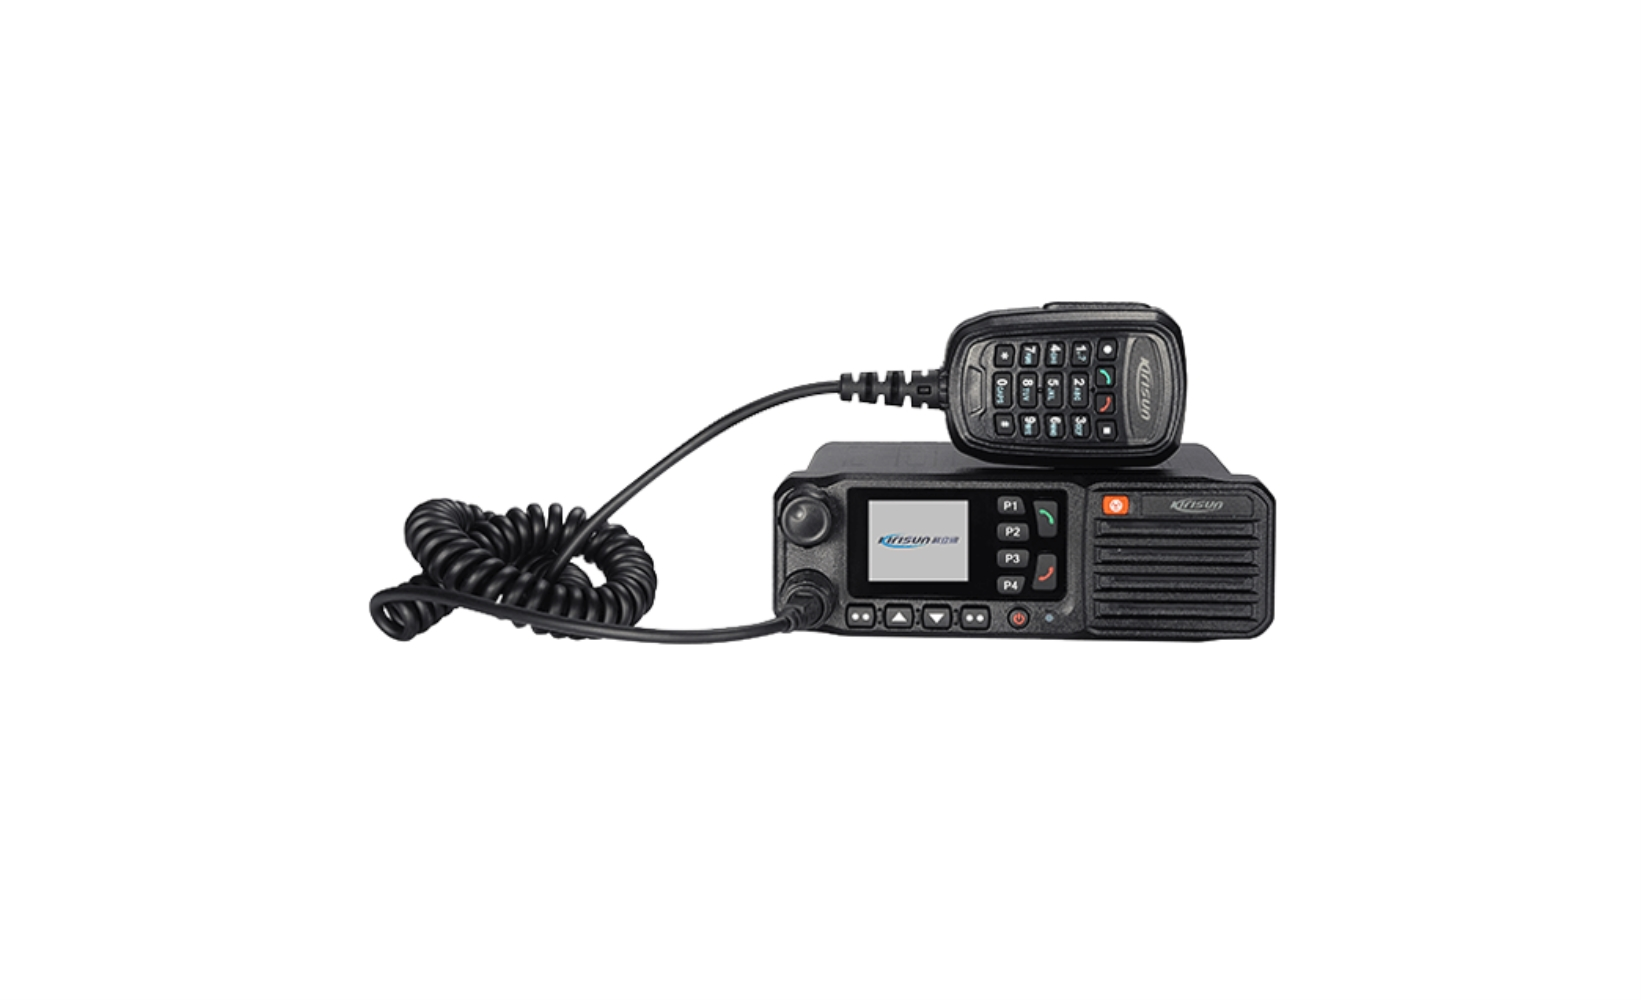 photo of Kirisun TM-840-GPS-VHF-25 - 1024 Channel, 25 Watt, VHF Mobile Radio